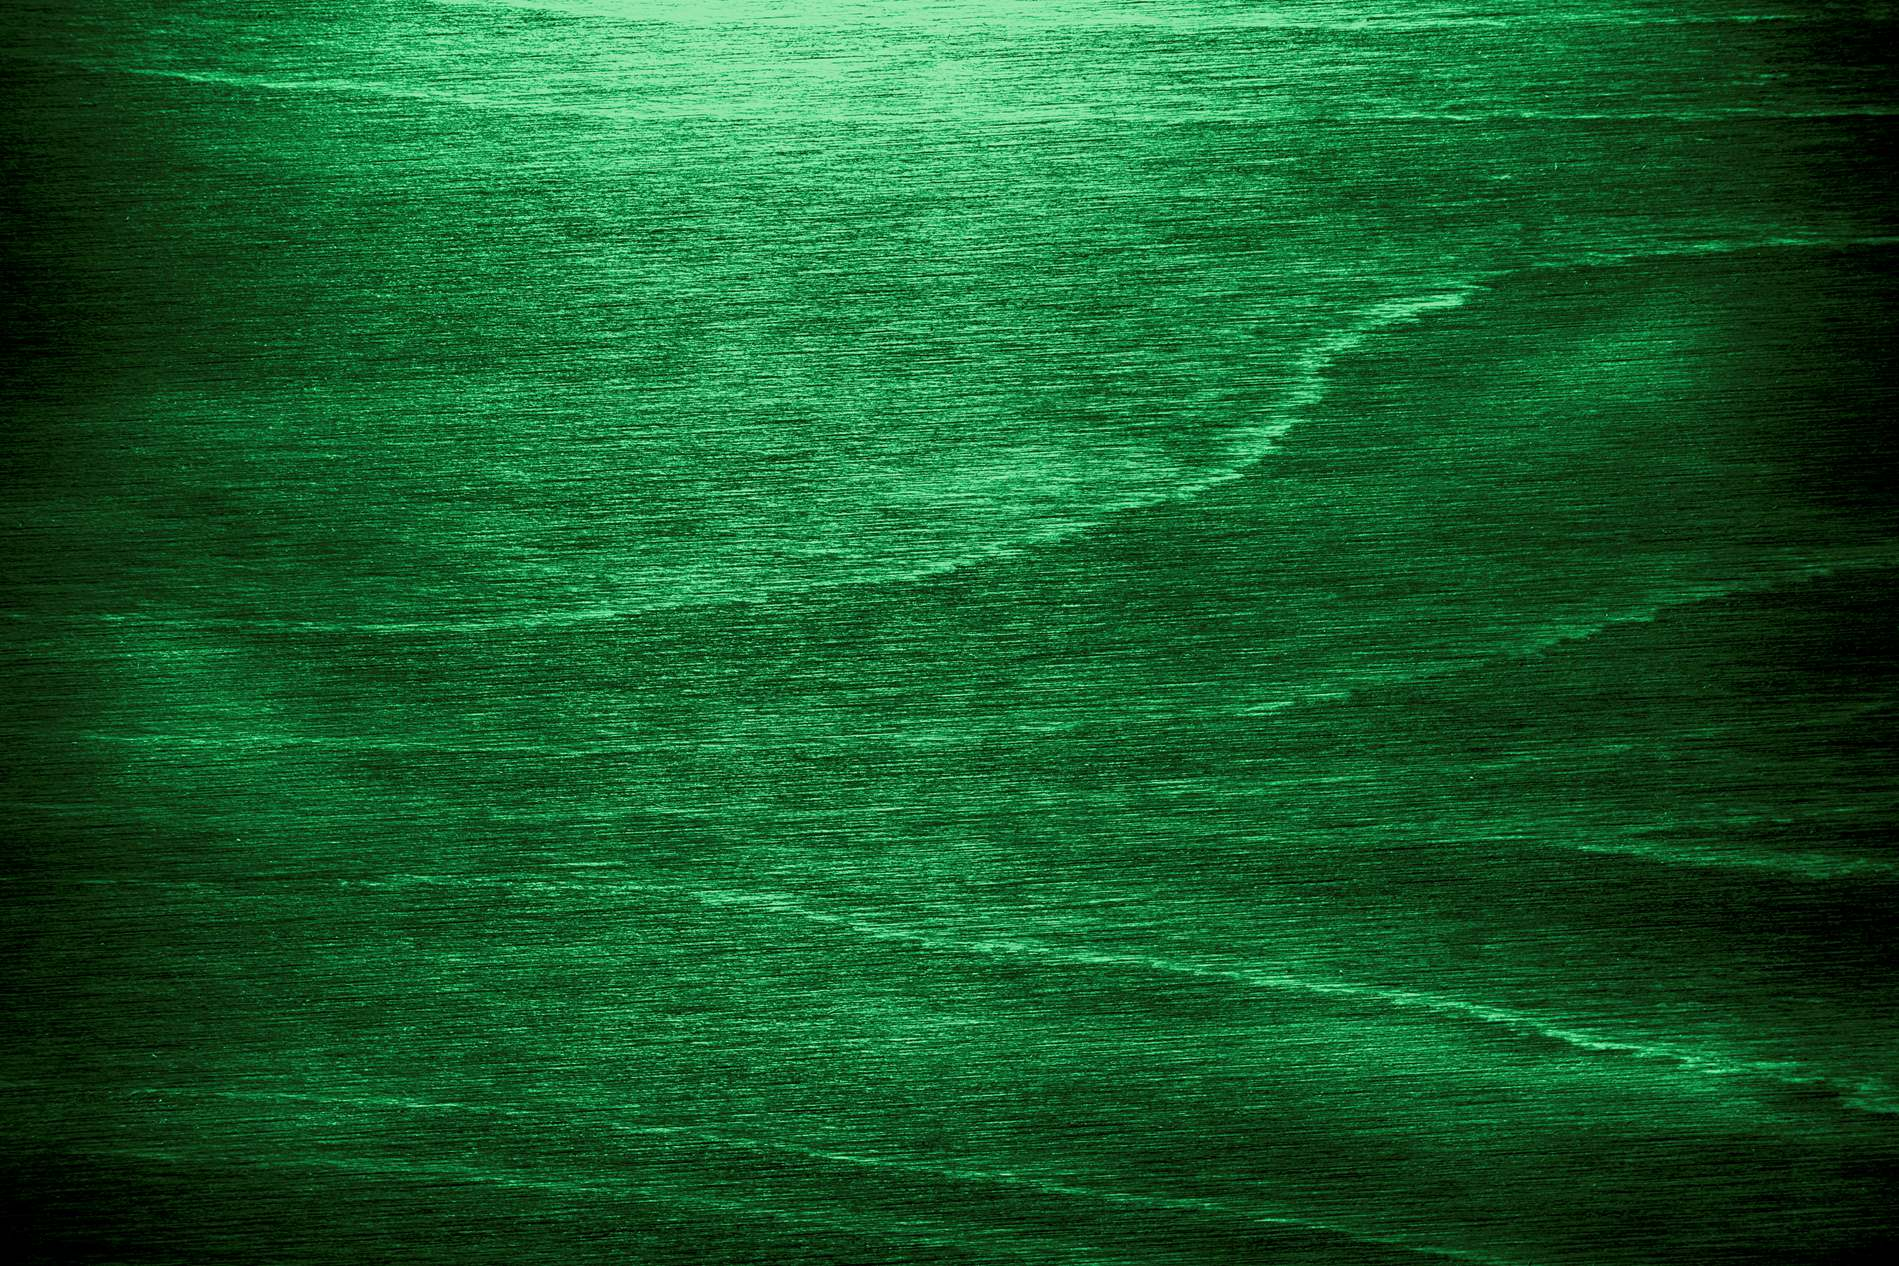 dark dramatic green texture background photohdx